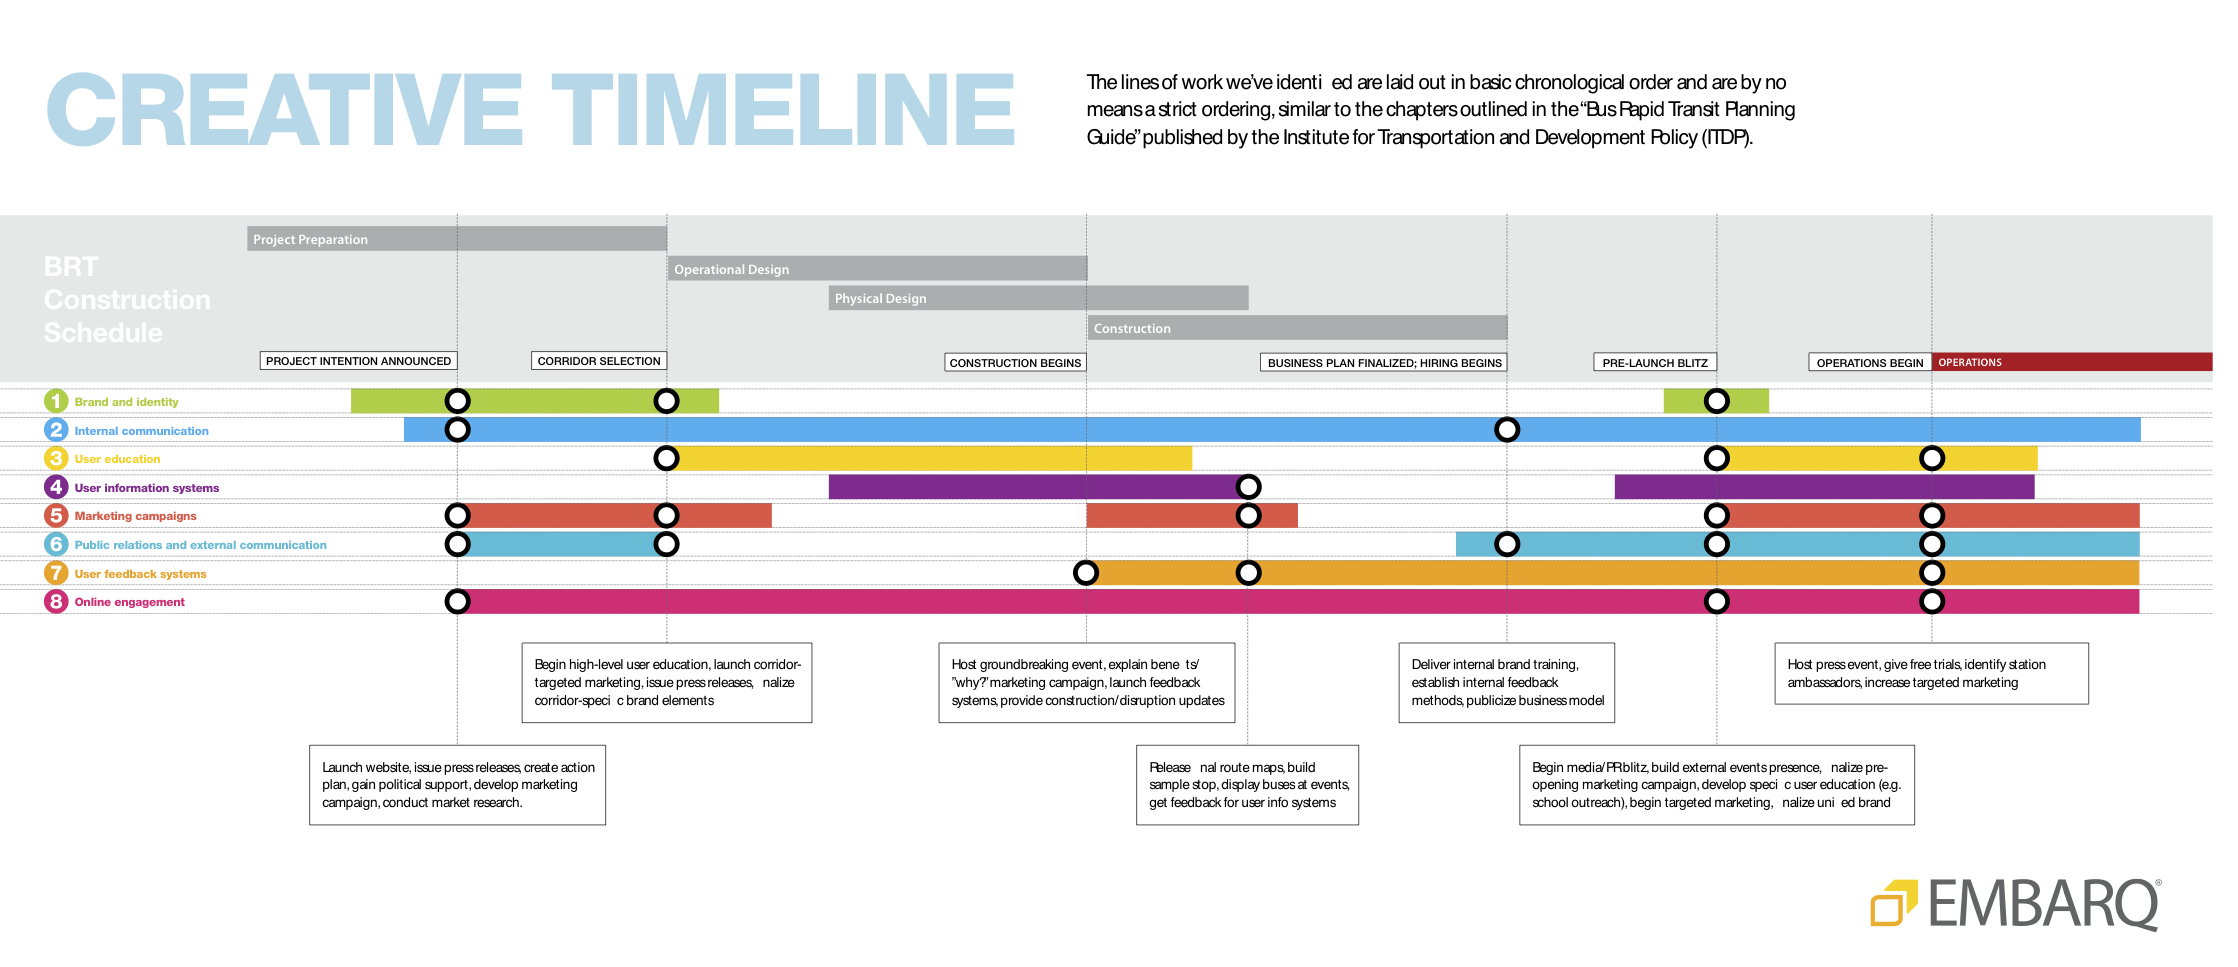 Transportation Branding Creative Timeline Via Embarq  Well